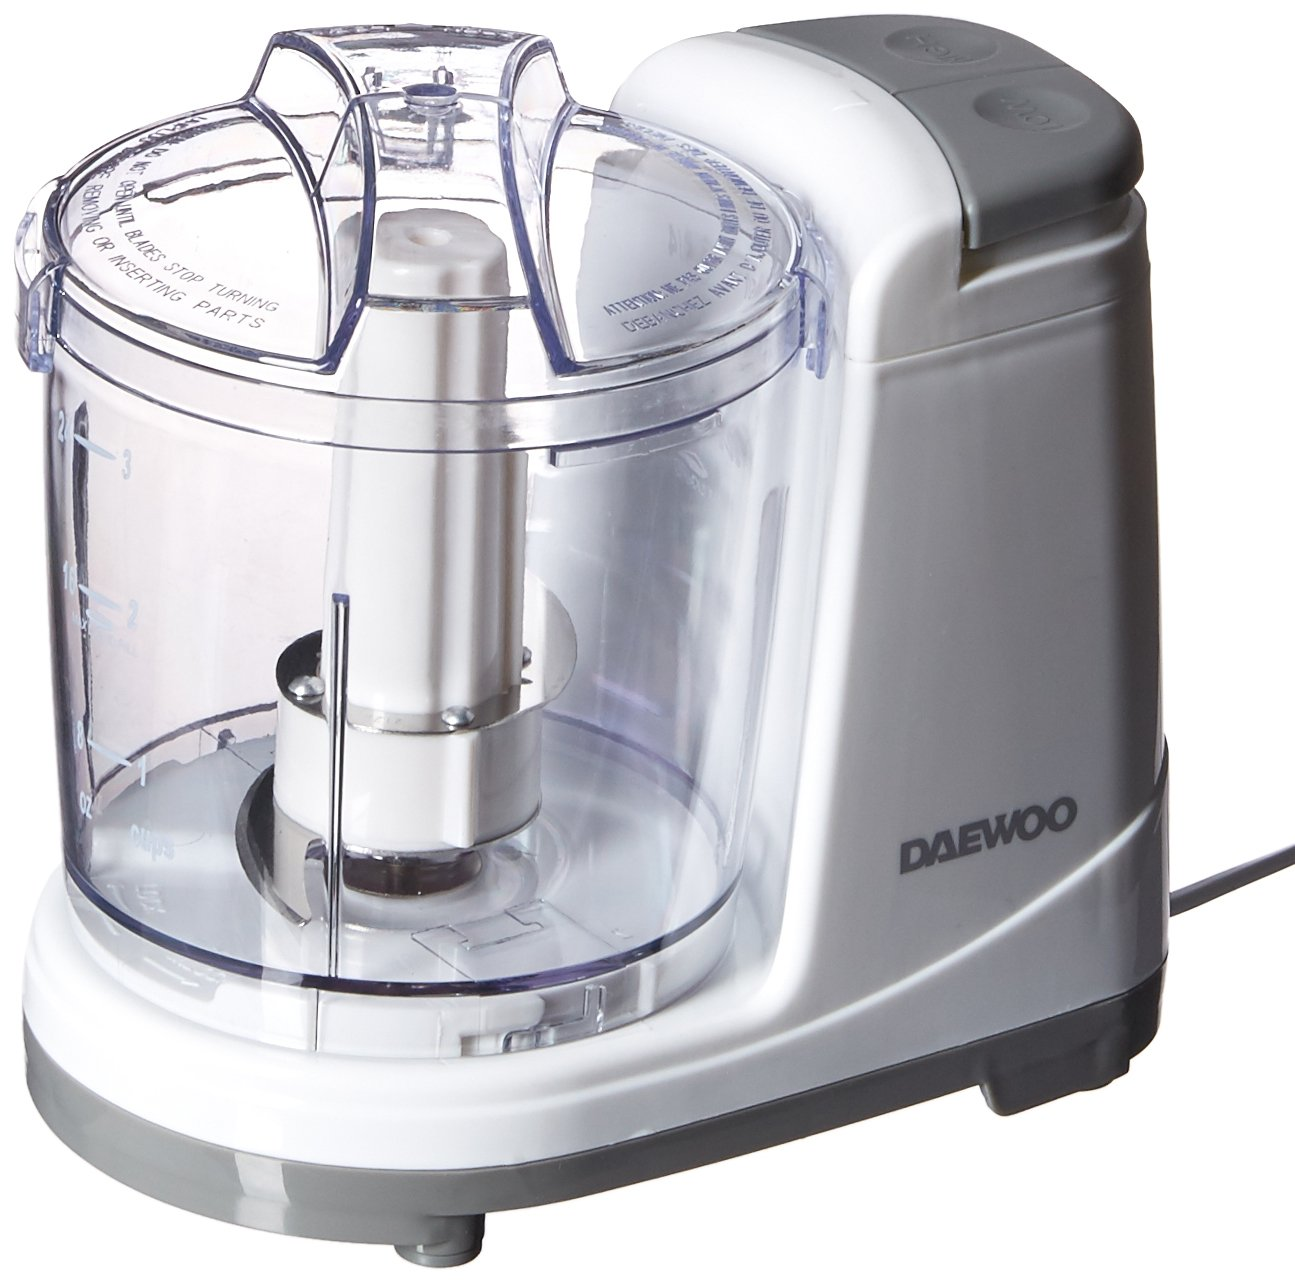 Daewoo DFP-415M 3-Cups 135 Watts Mini Food Chopper, 220 Volts (Not for USA)